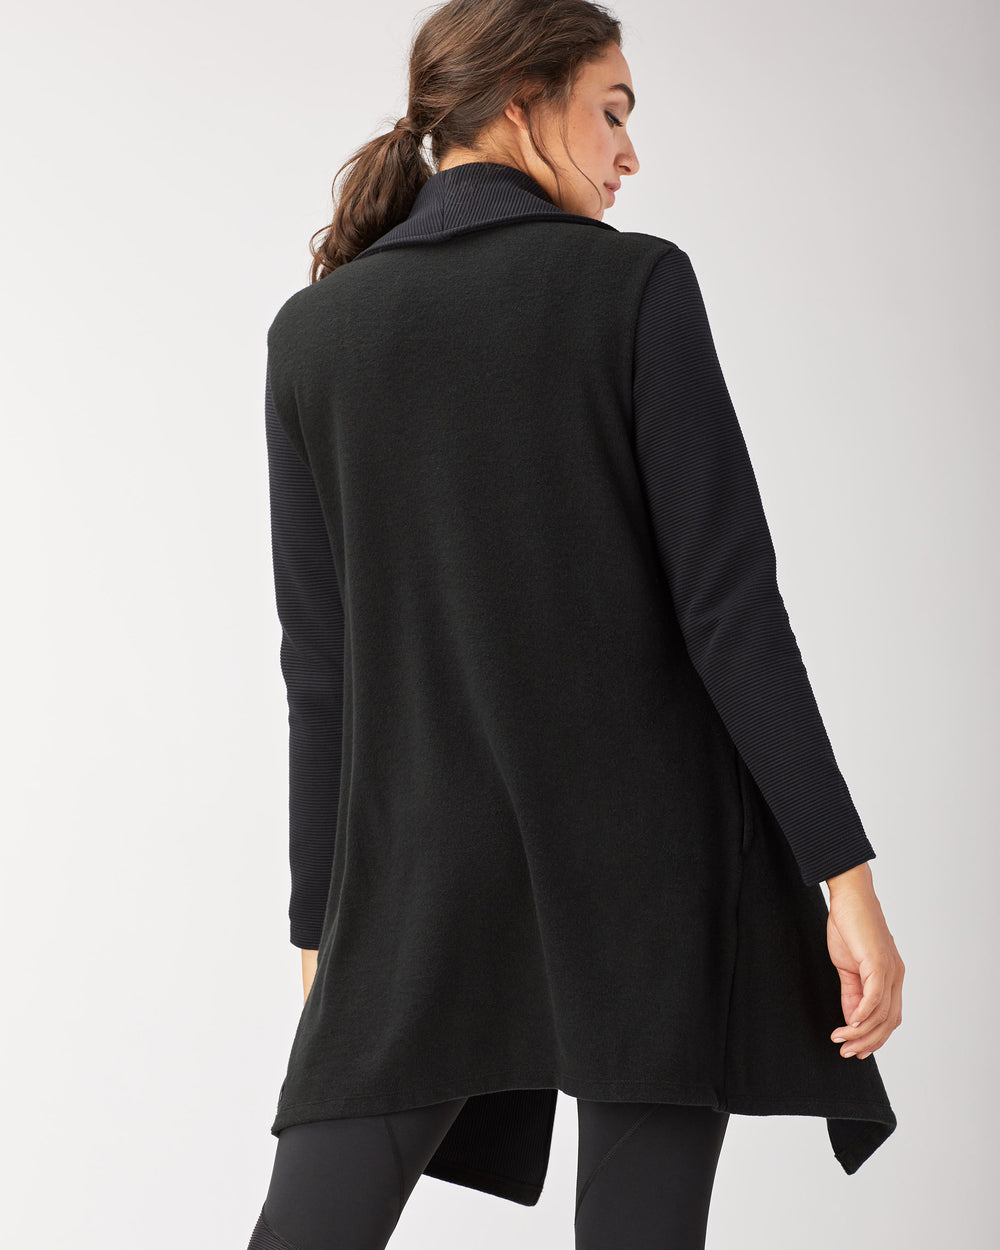 Aurora Jacket - Black